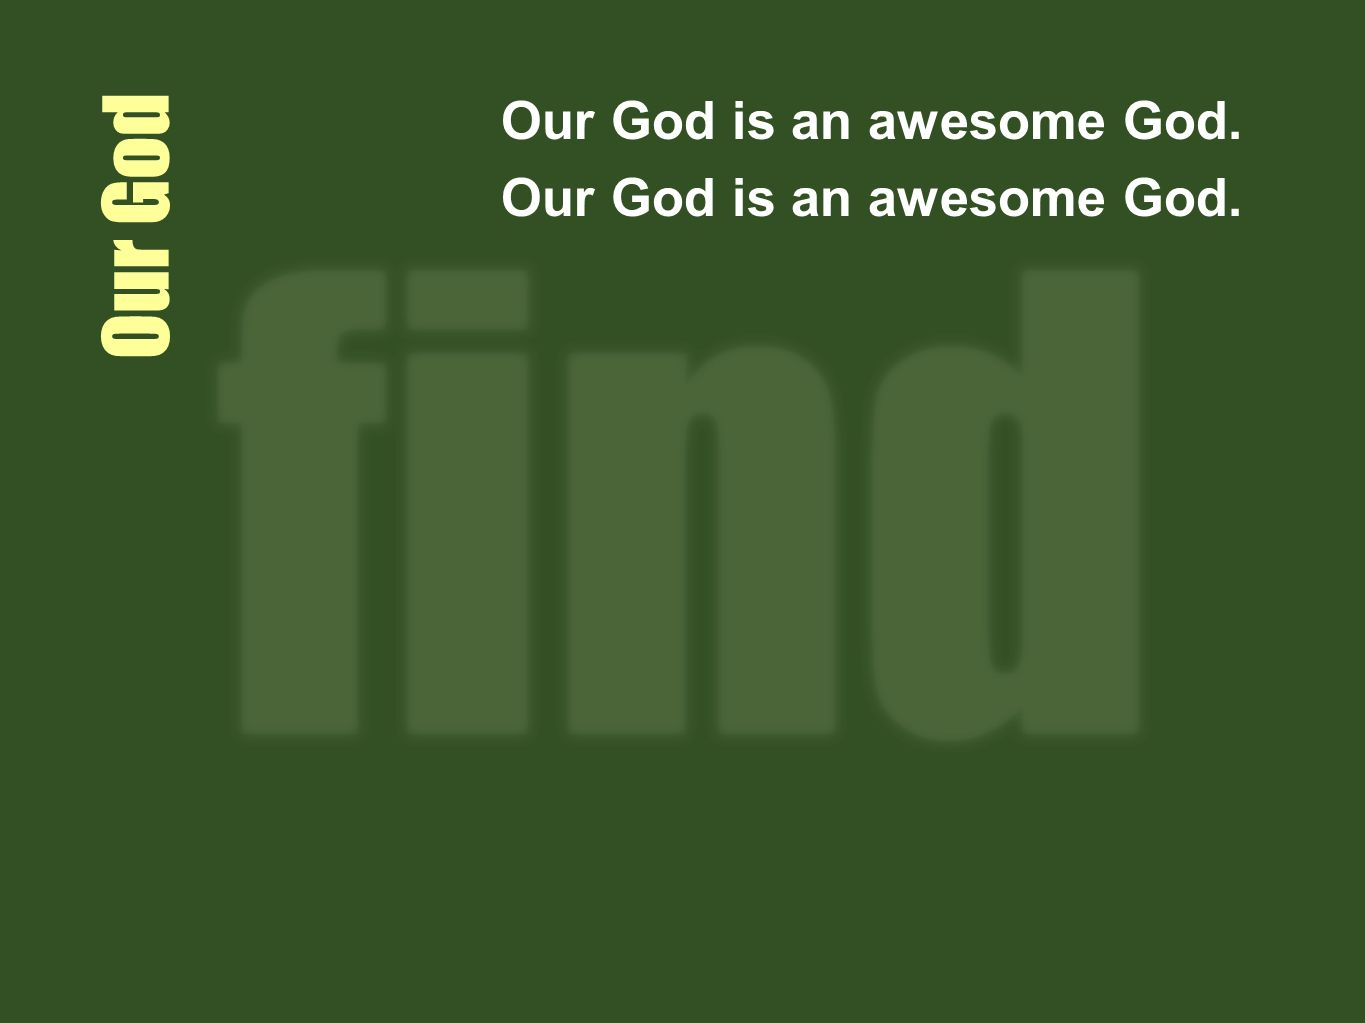 Our God Our God is an awesome God.